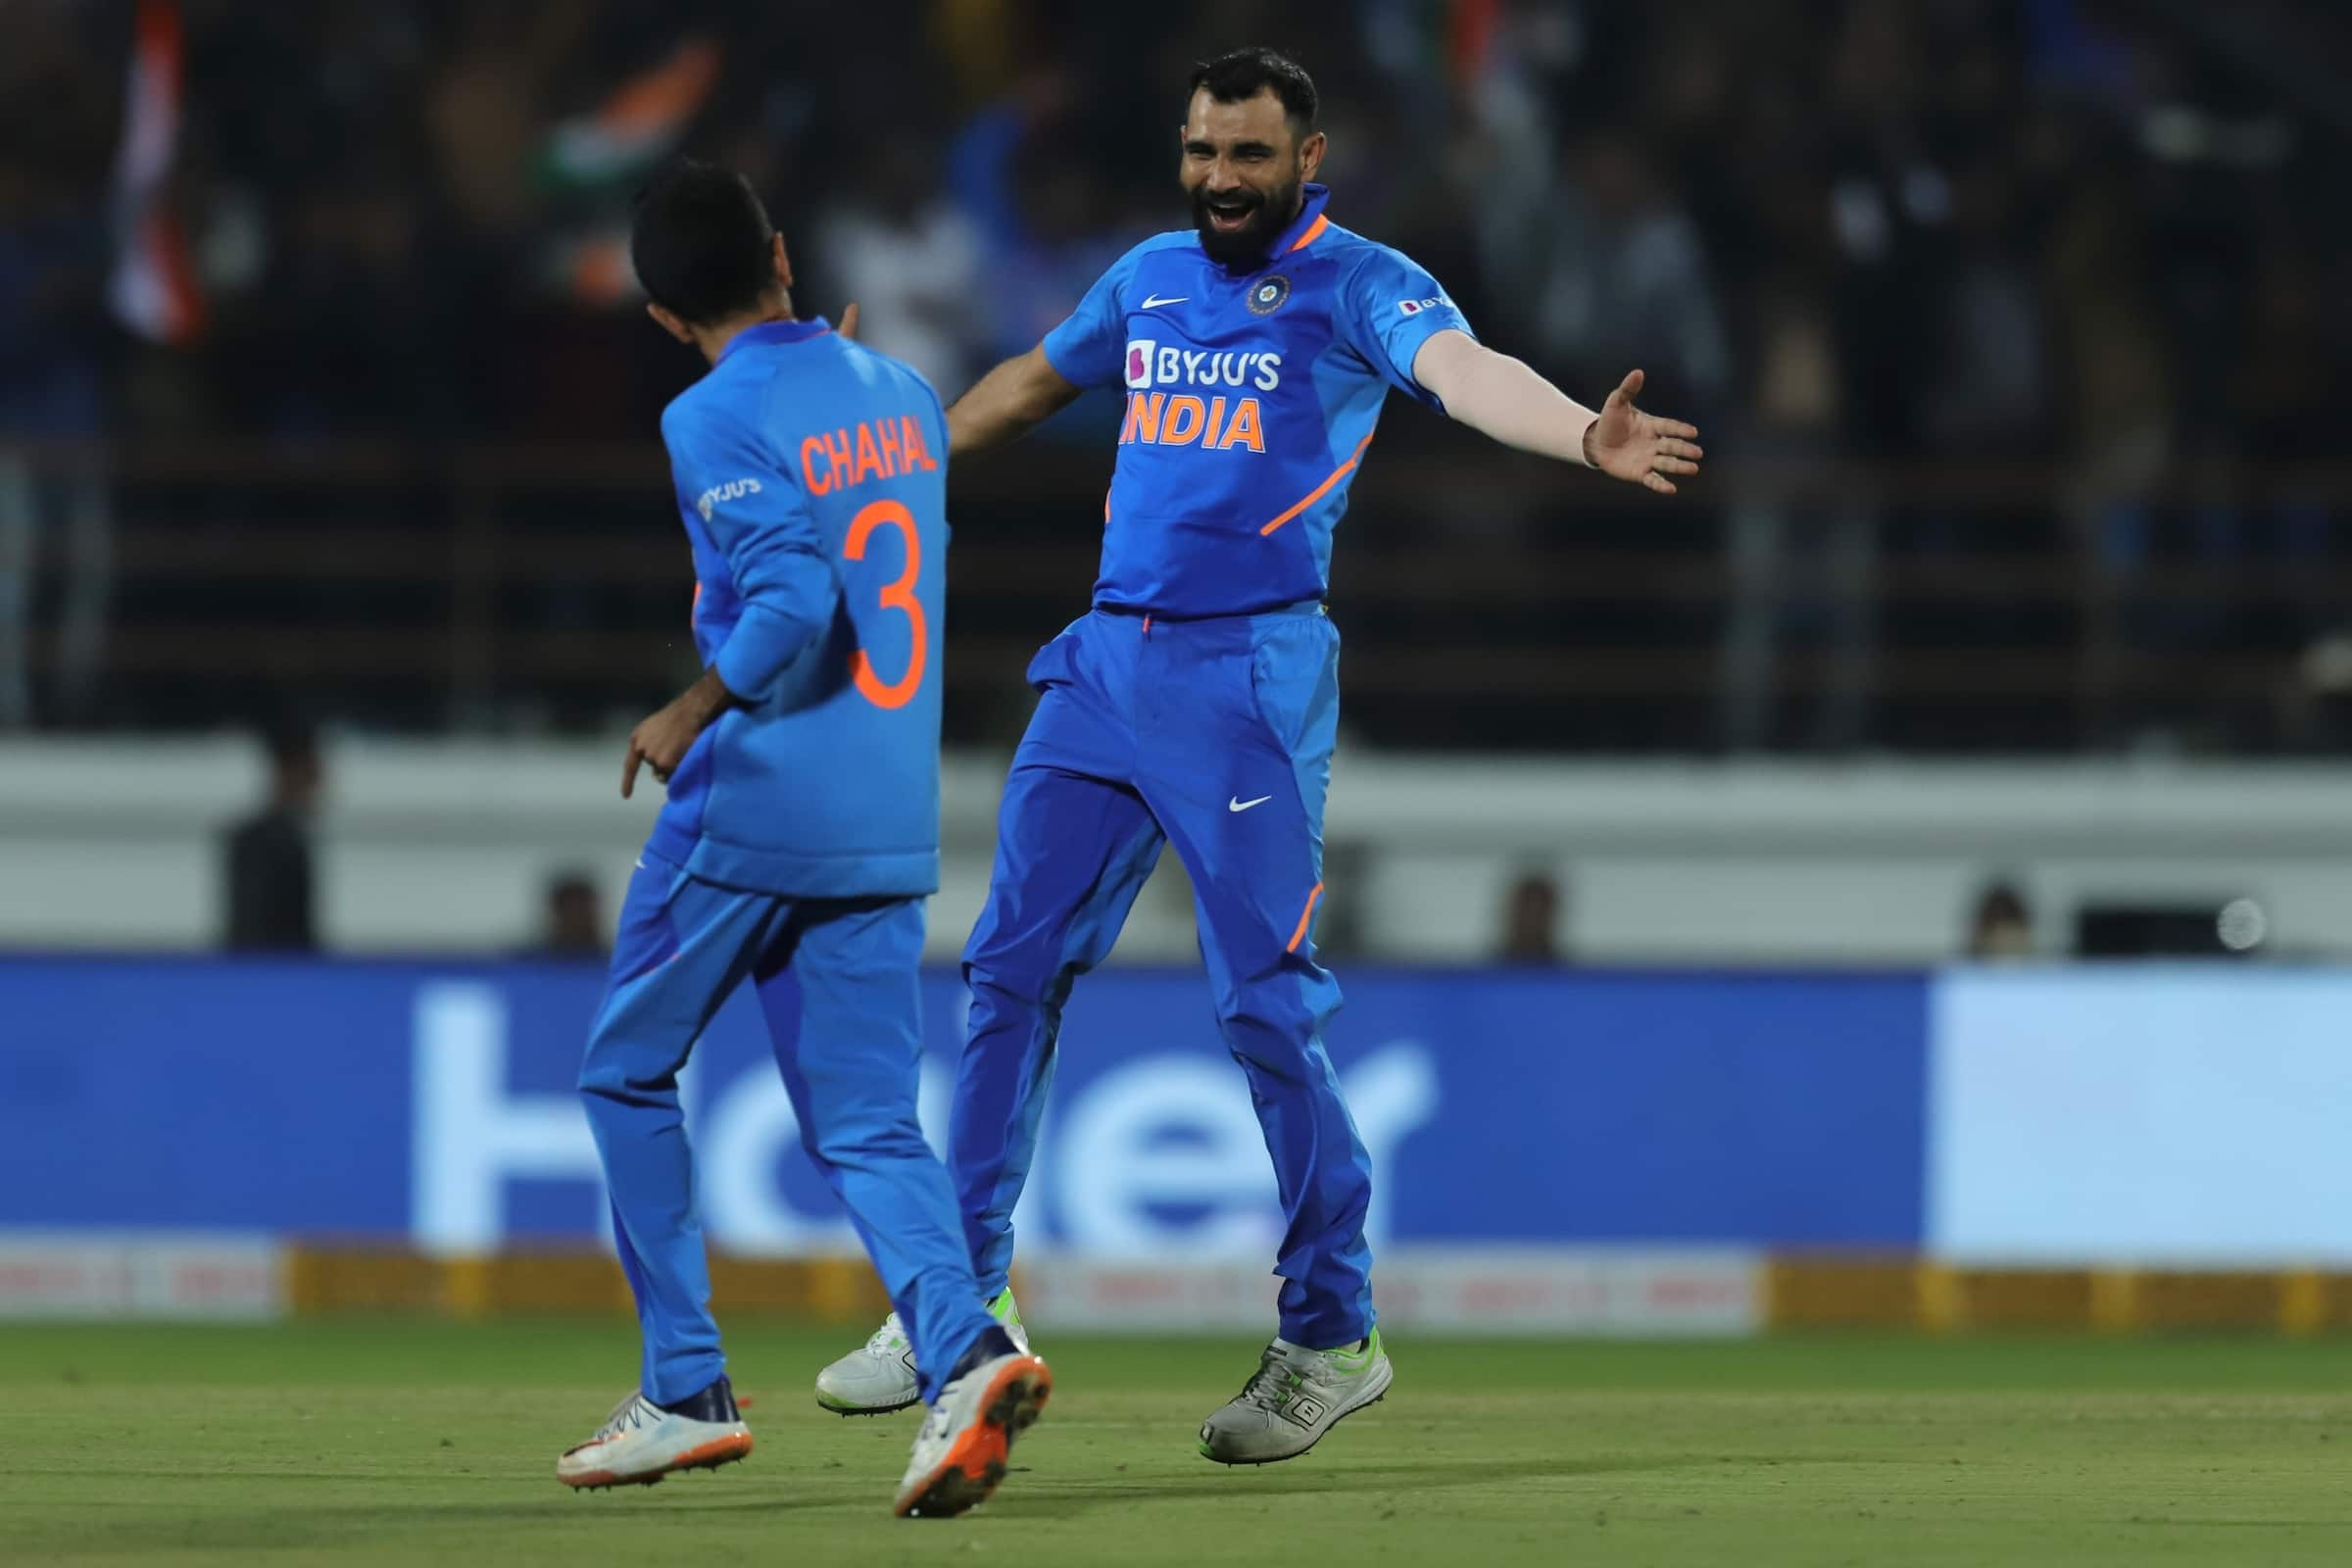 Shami Sizzles With Corker Yorkers   Ind v Aus